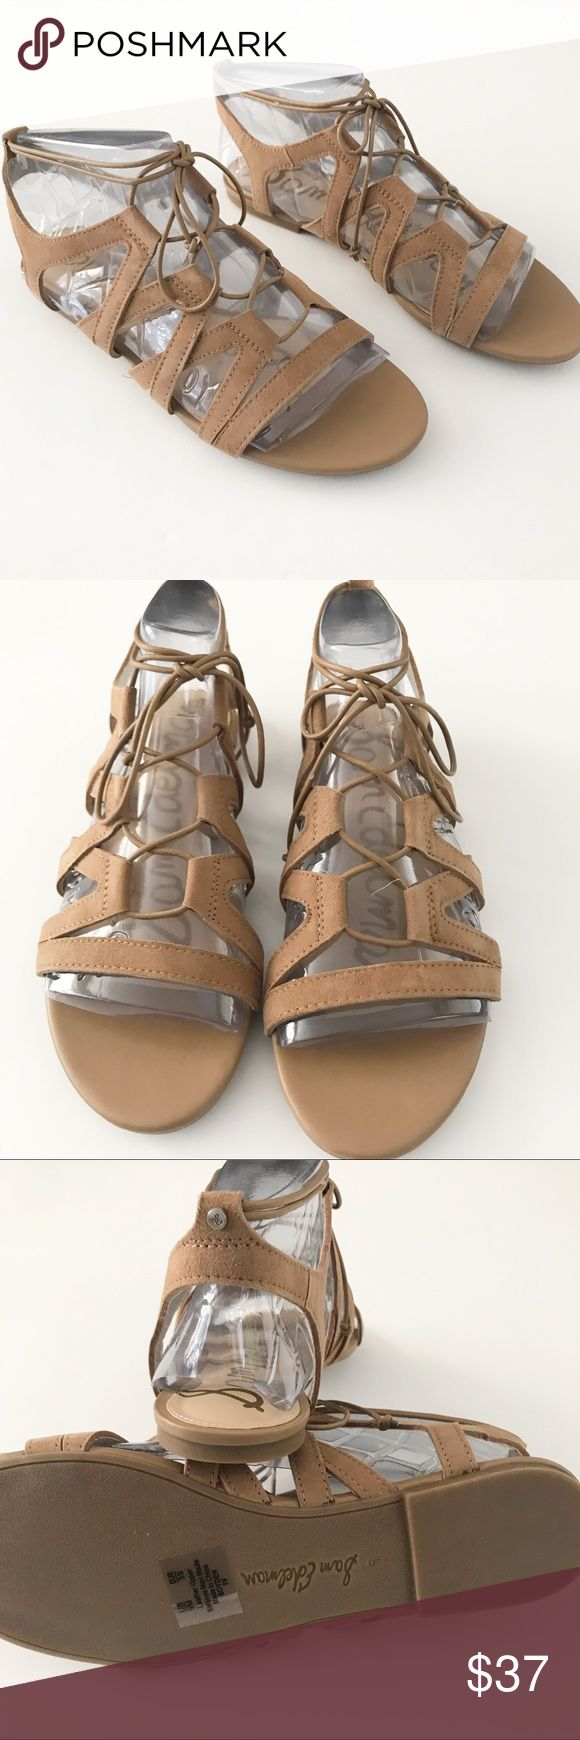 """Brand new! Same Edelman Camel sandals Comes with original box. Materials are leather and suede. Has a slightly padded footbed and a 1/2"""" wooden heel Sam Edelman Shoes"""